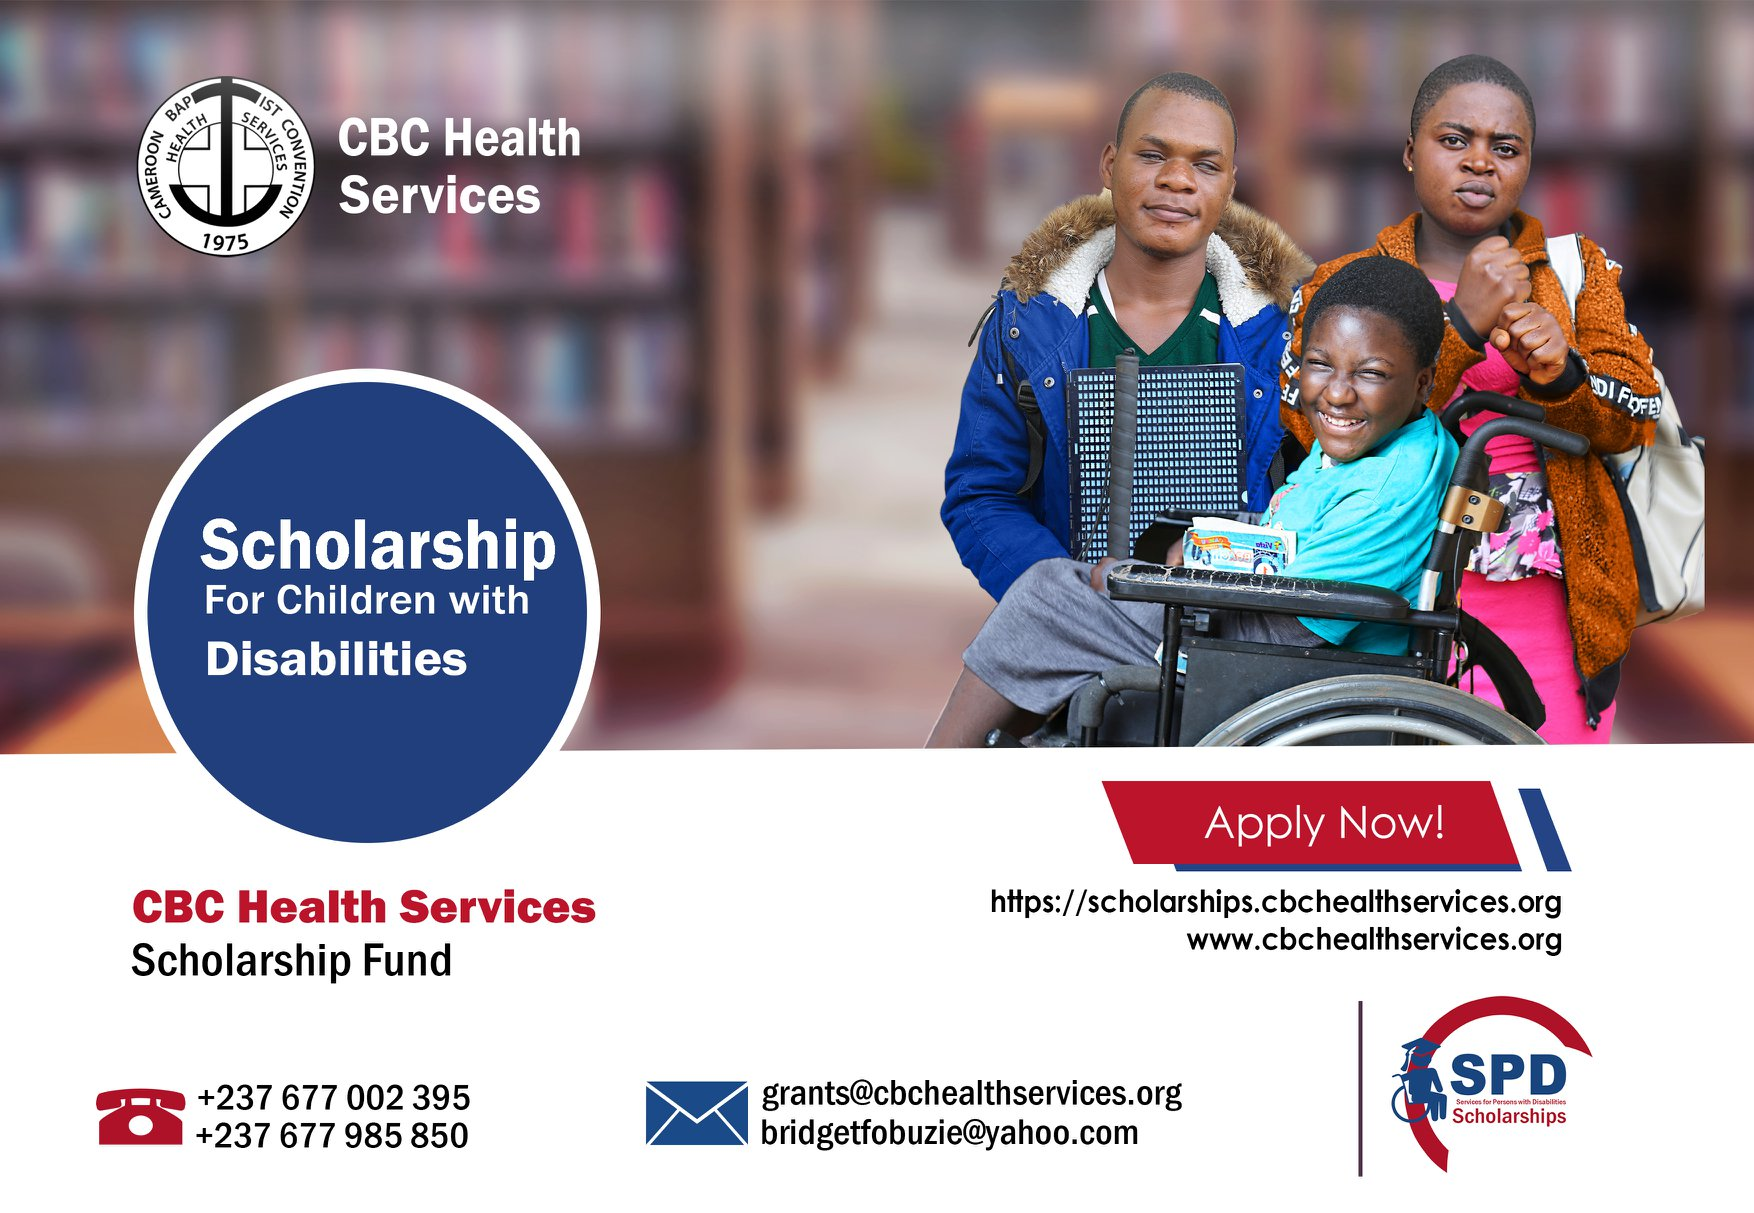 CBCHS Launches Scholarship for Children with Disability